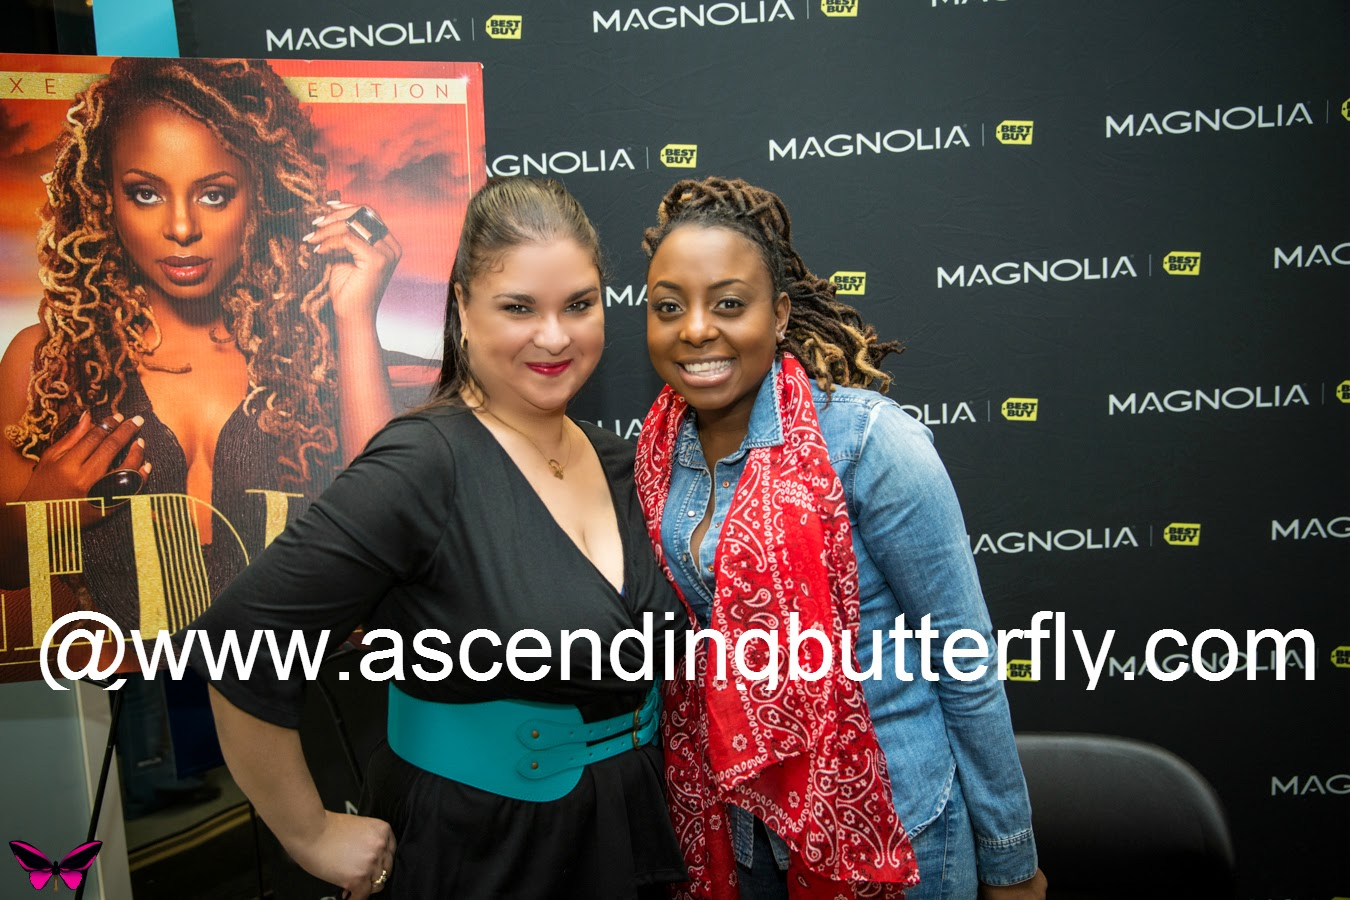 Ascending Butterfly and Ledisi at The Truth Autograph Signing at Best Buy